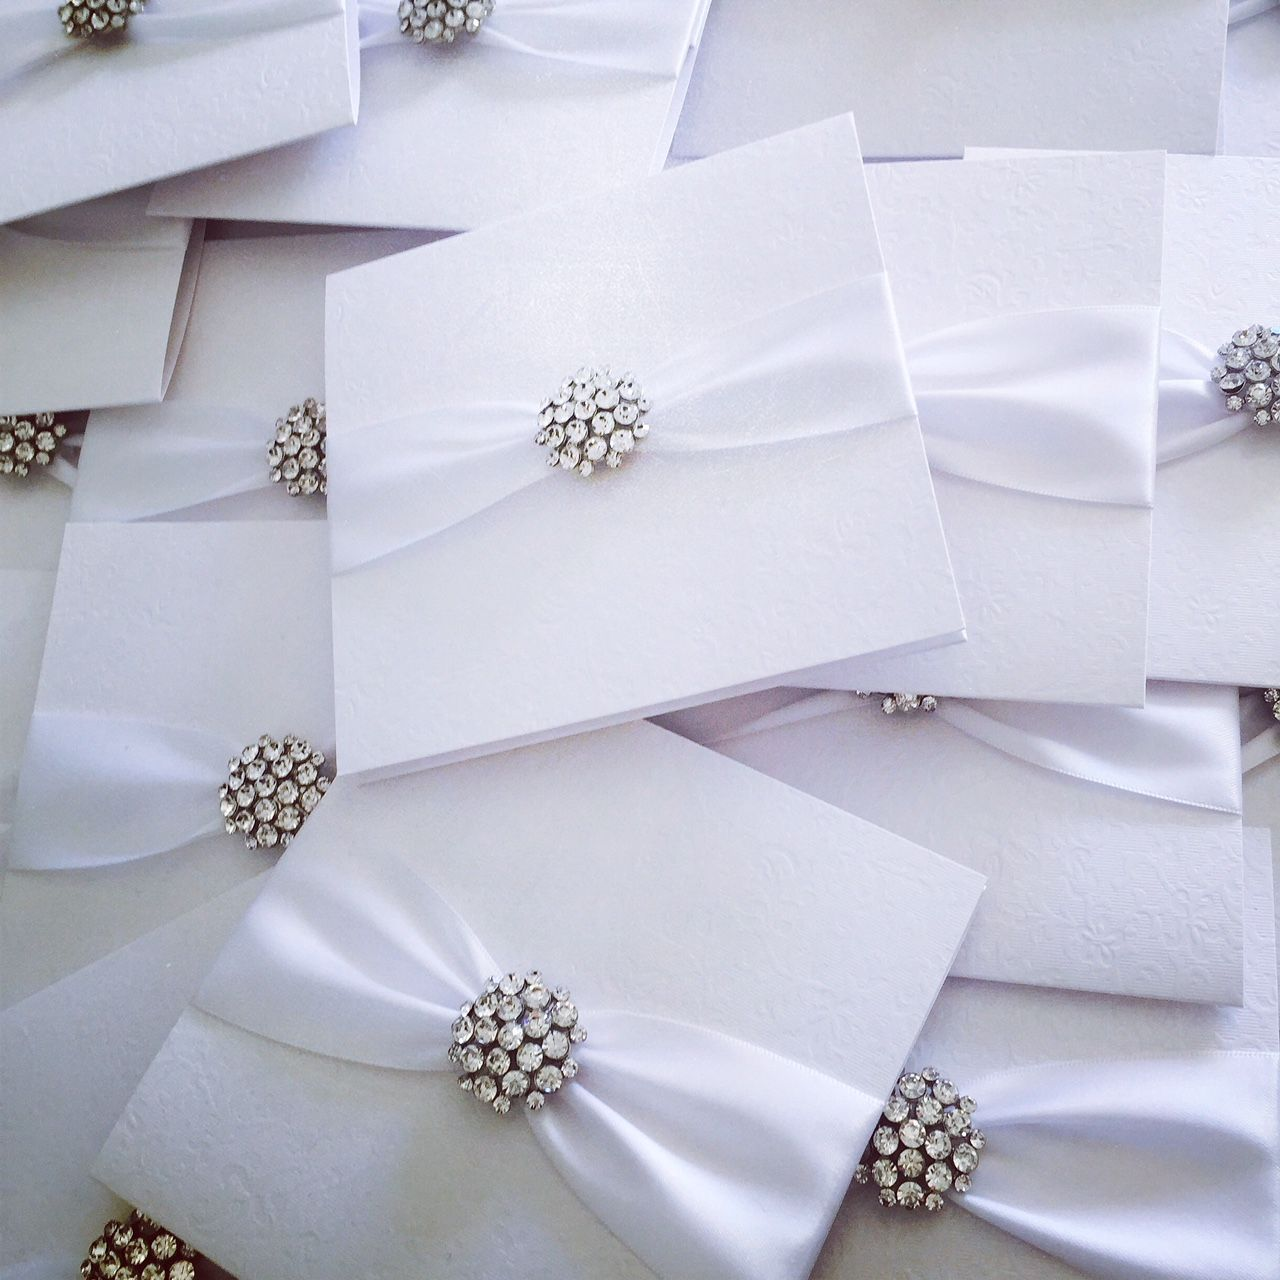 luxury white wedding invitations decorated with sparkly diamante brooch